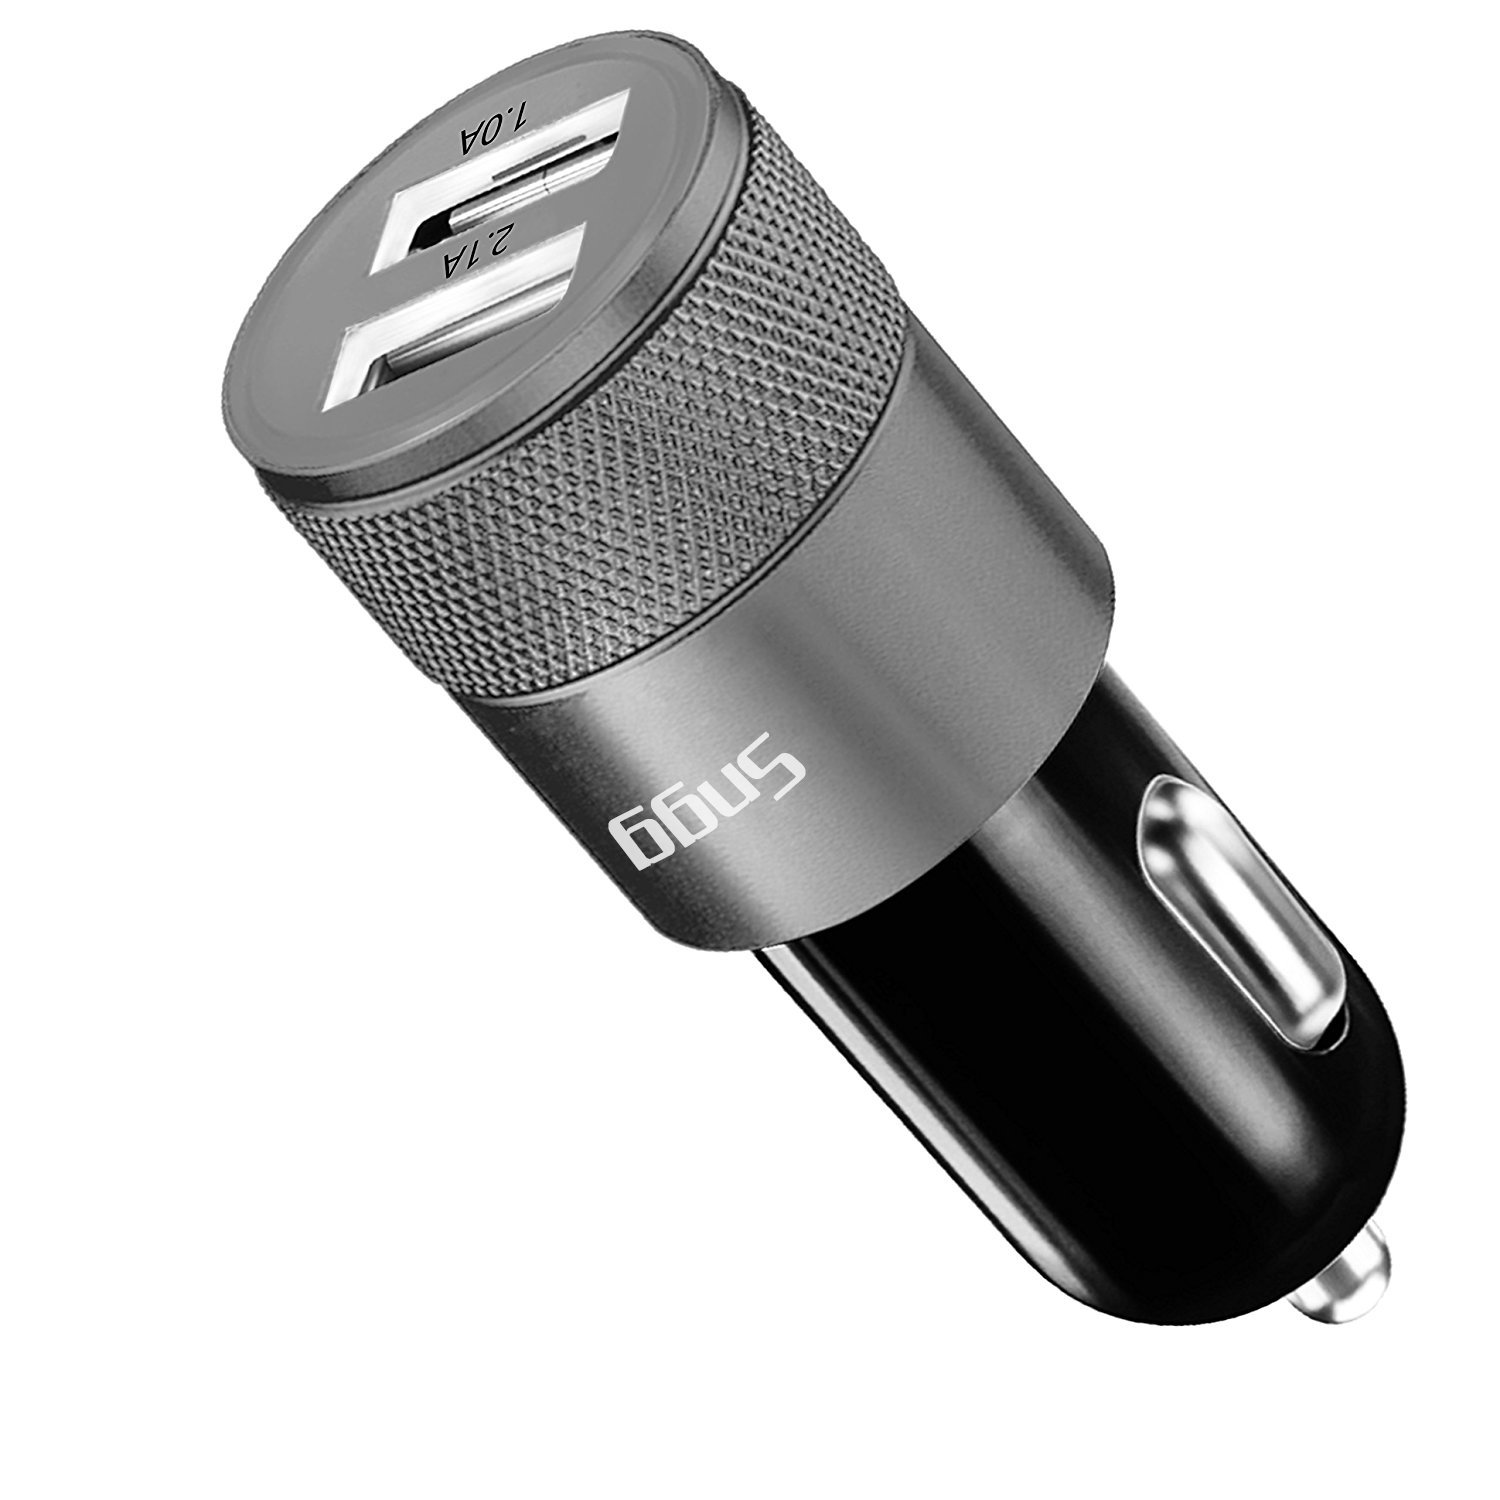 Sngg Car Charger,3.1A Rapid Dual Port USB Car charger for iPhone/ iPad / Samsung.